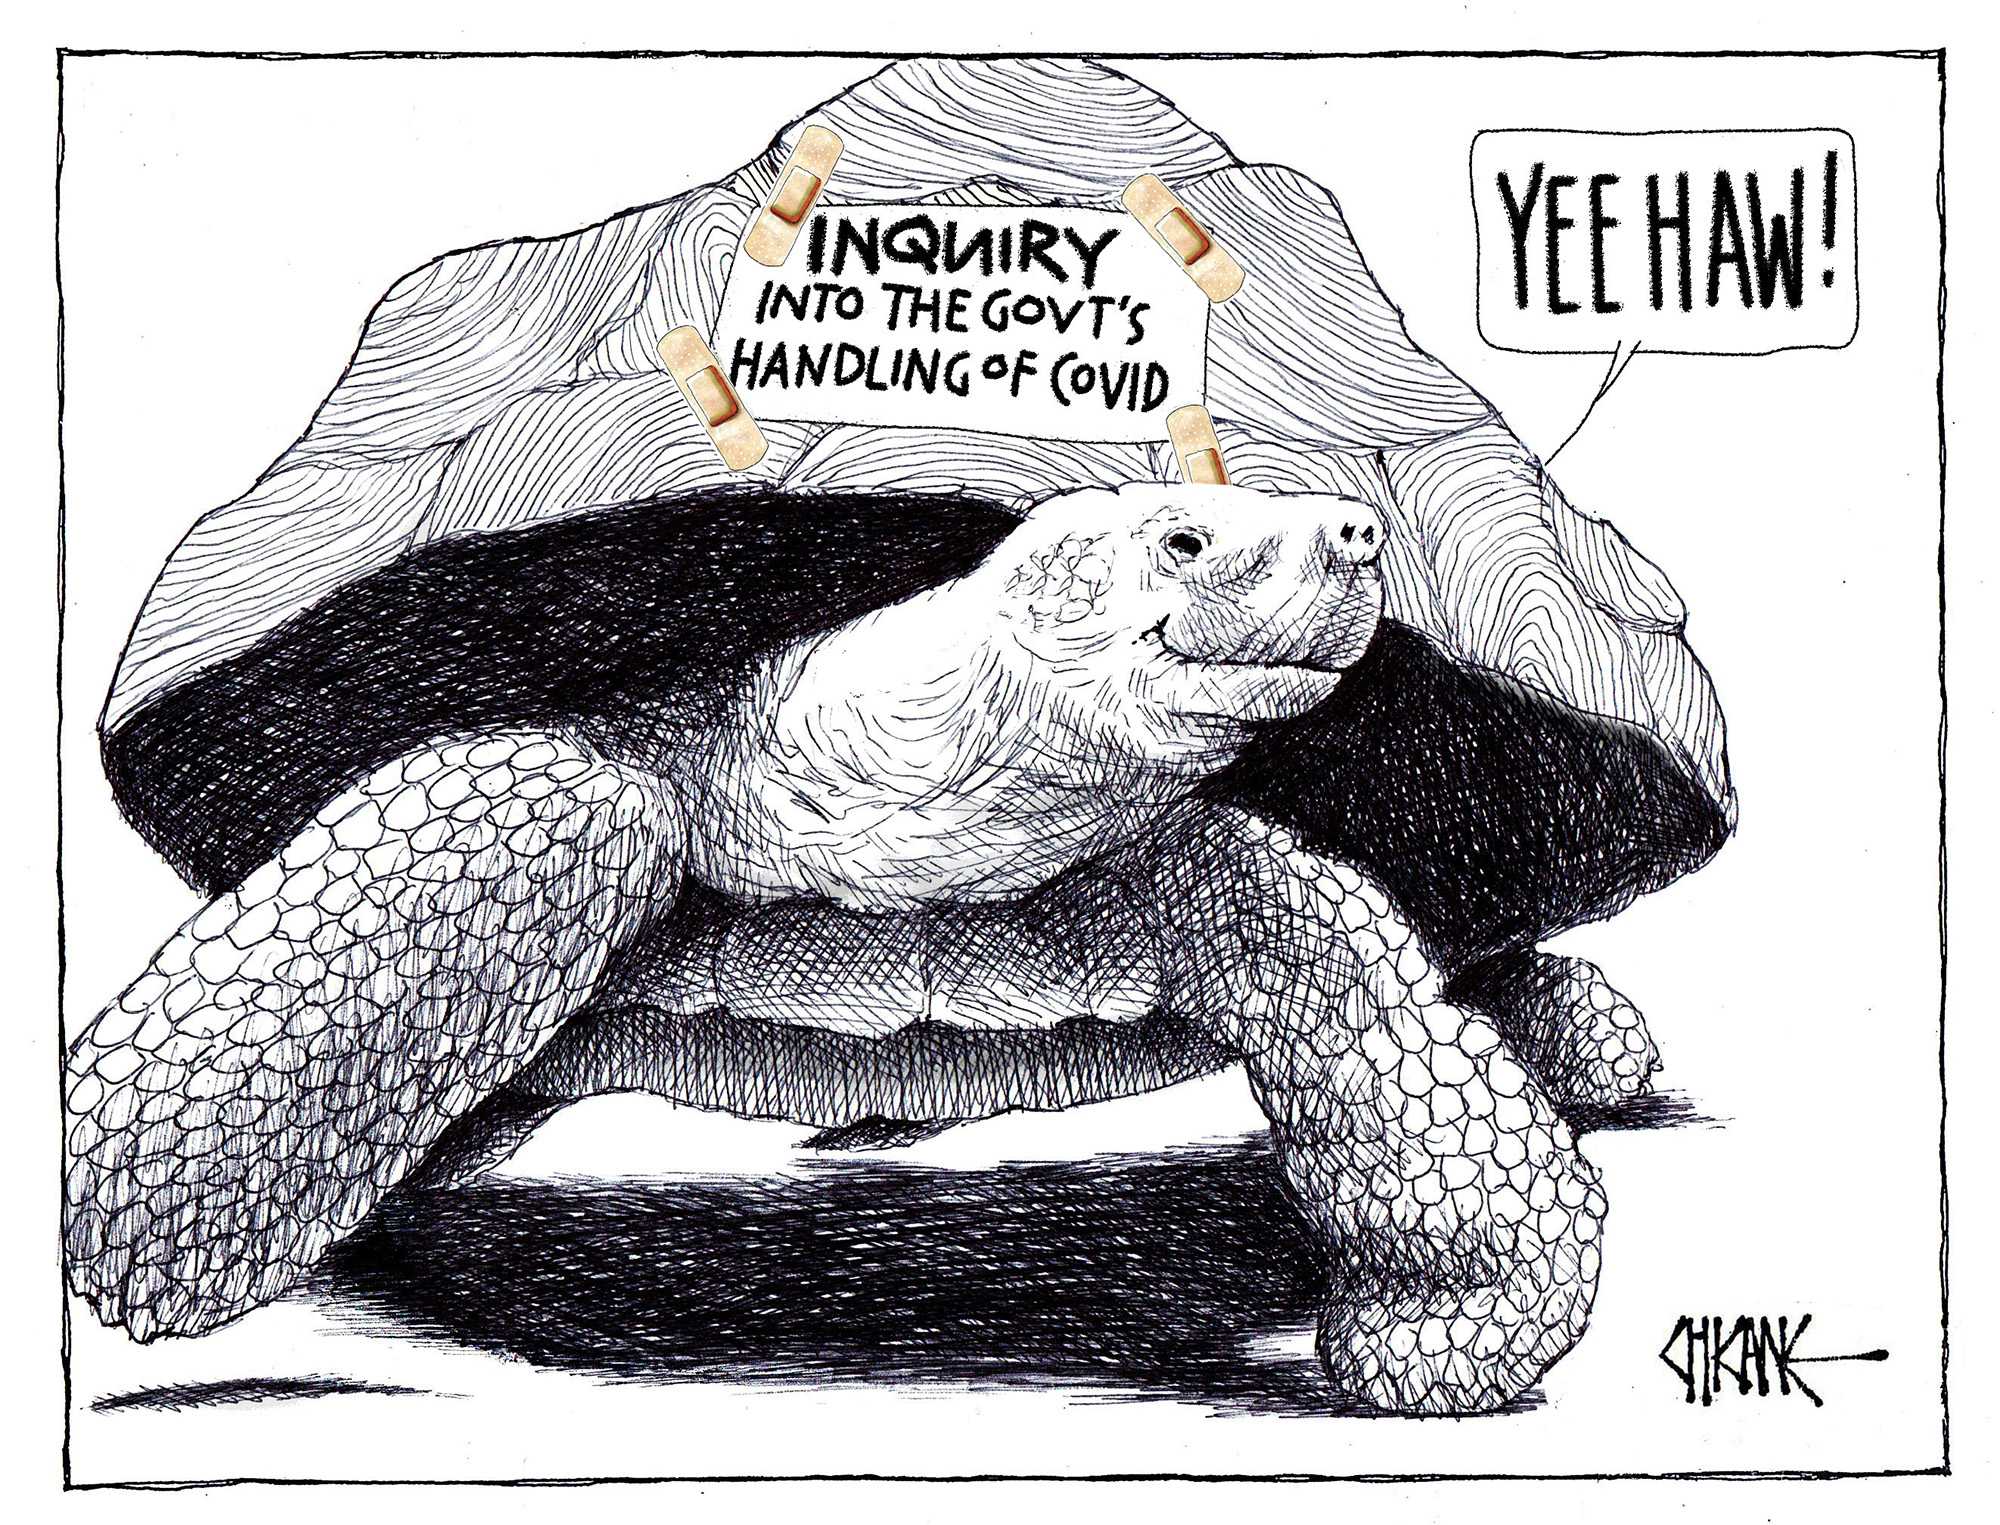 Inquiry into the Government's Handling of Covid cartoon by Chicane